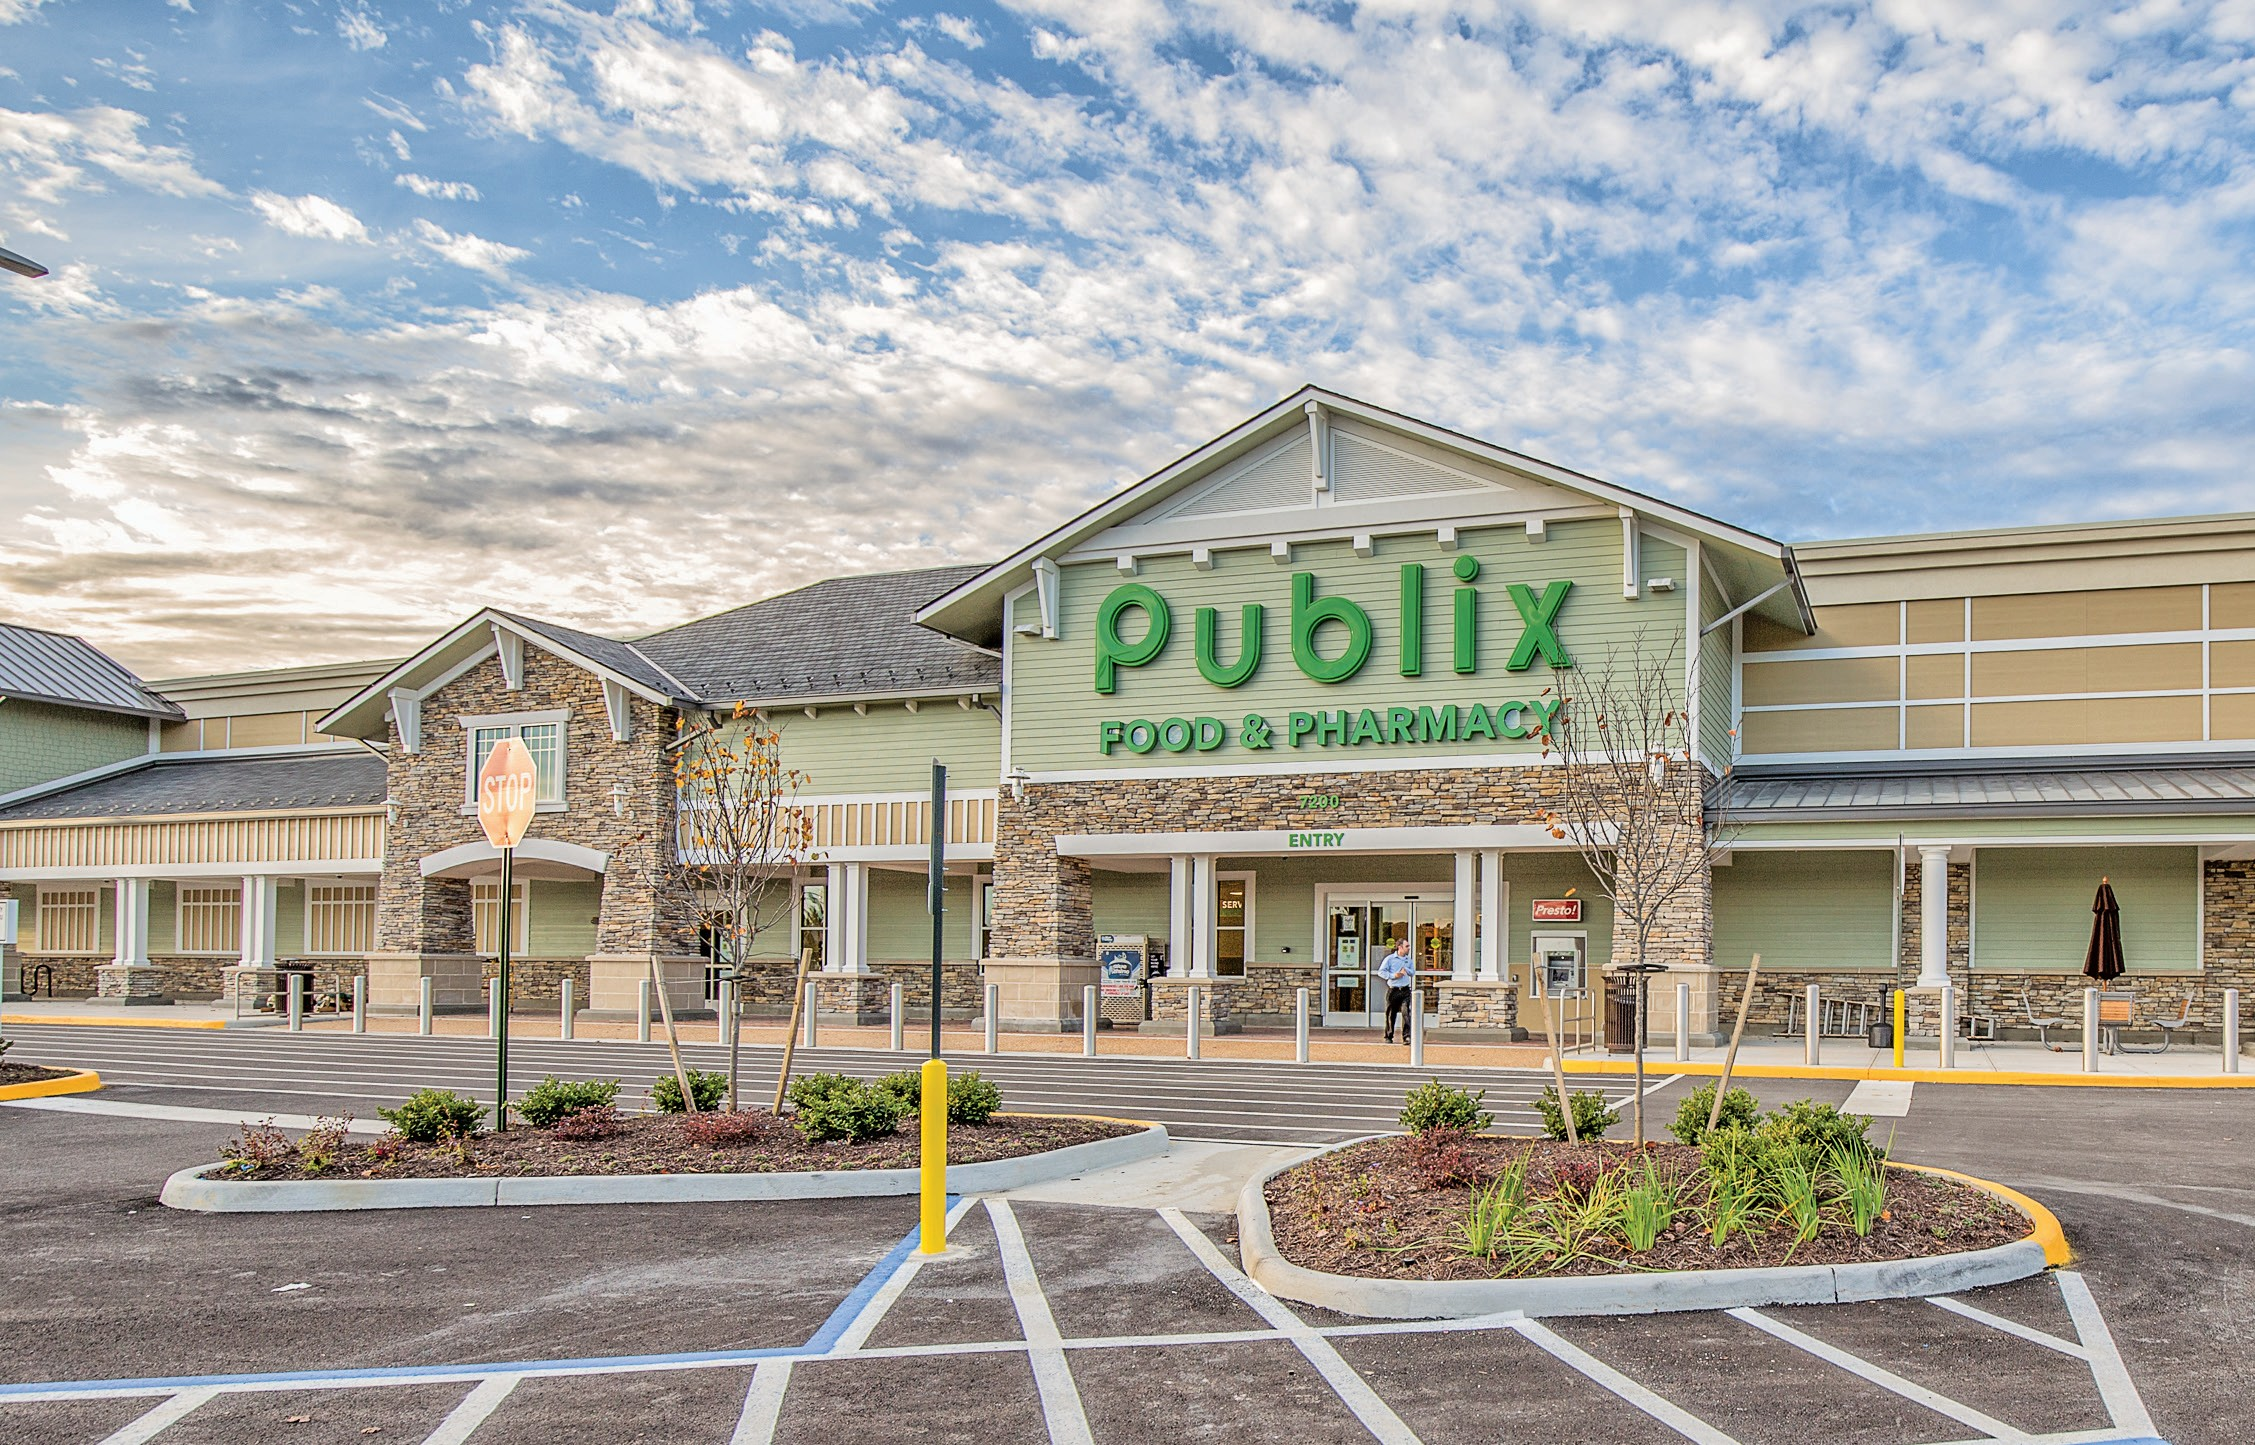 Publix makes a push in Chesterfield | Chesterfield Observer